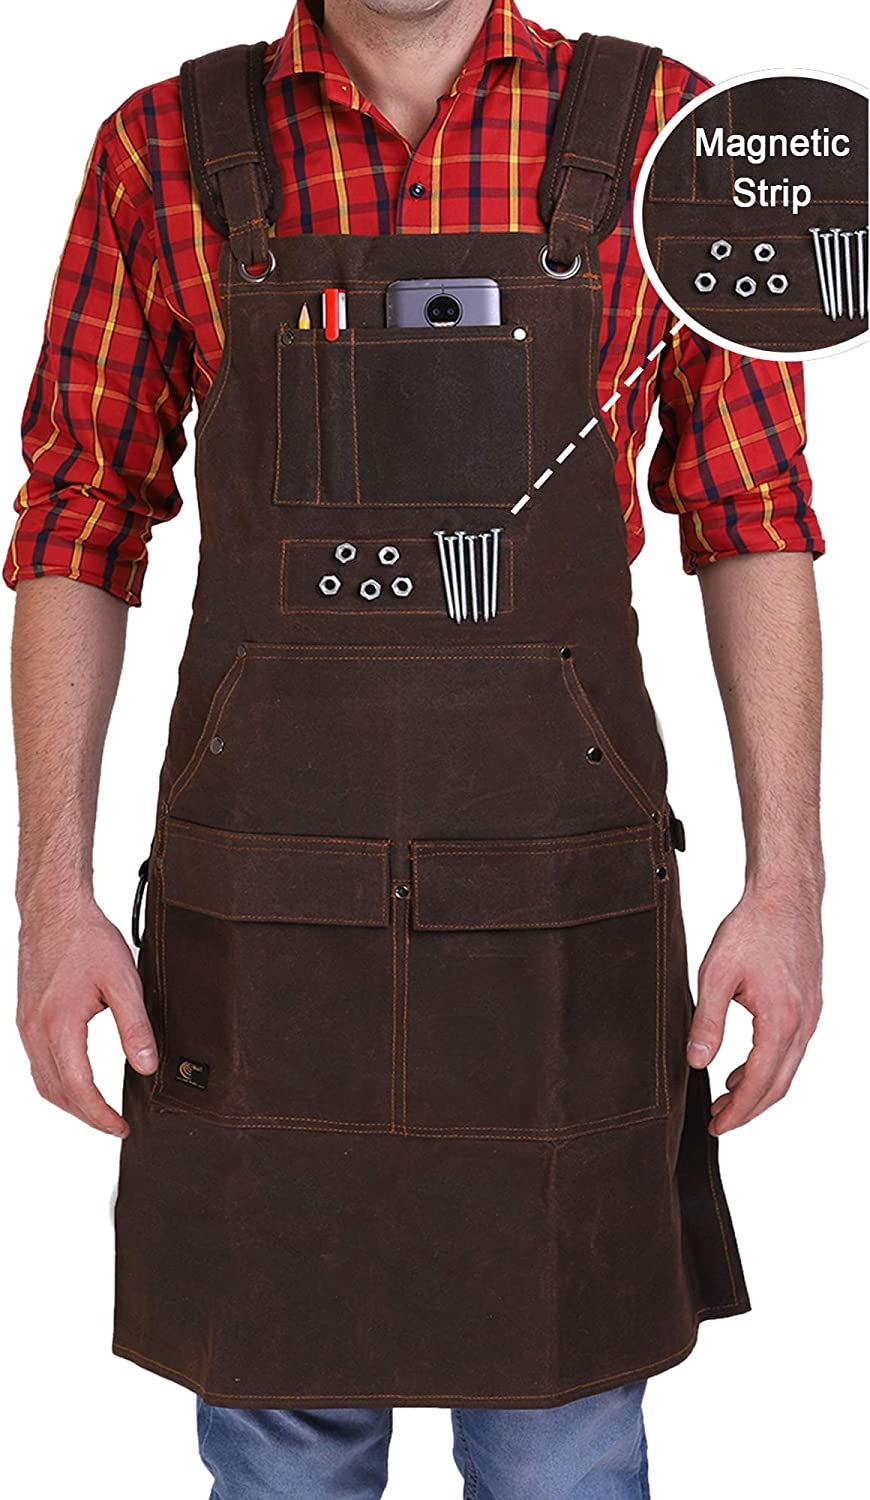 Leather Waxed Canvas Work Aprons for Men & Women with Pocket ...